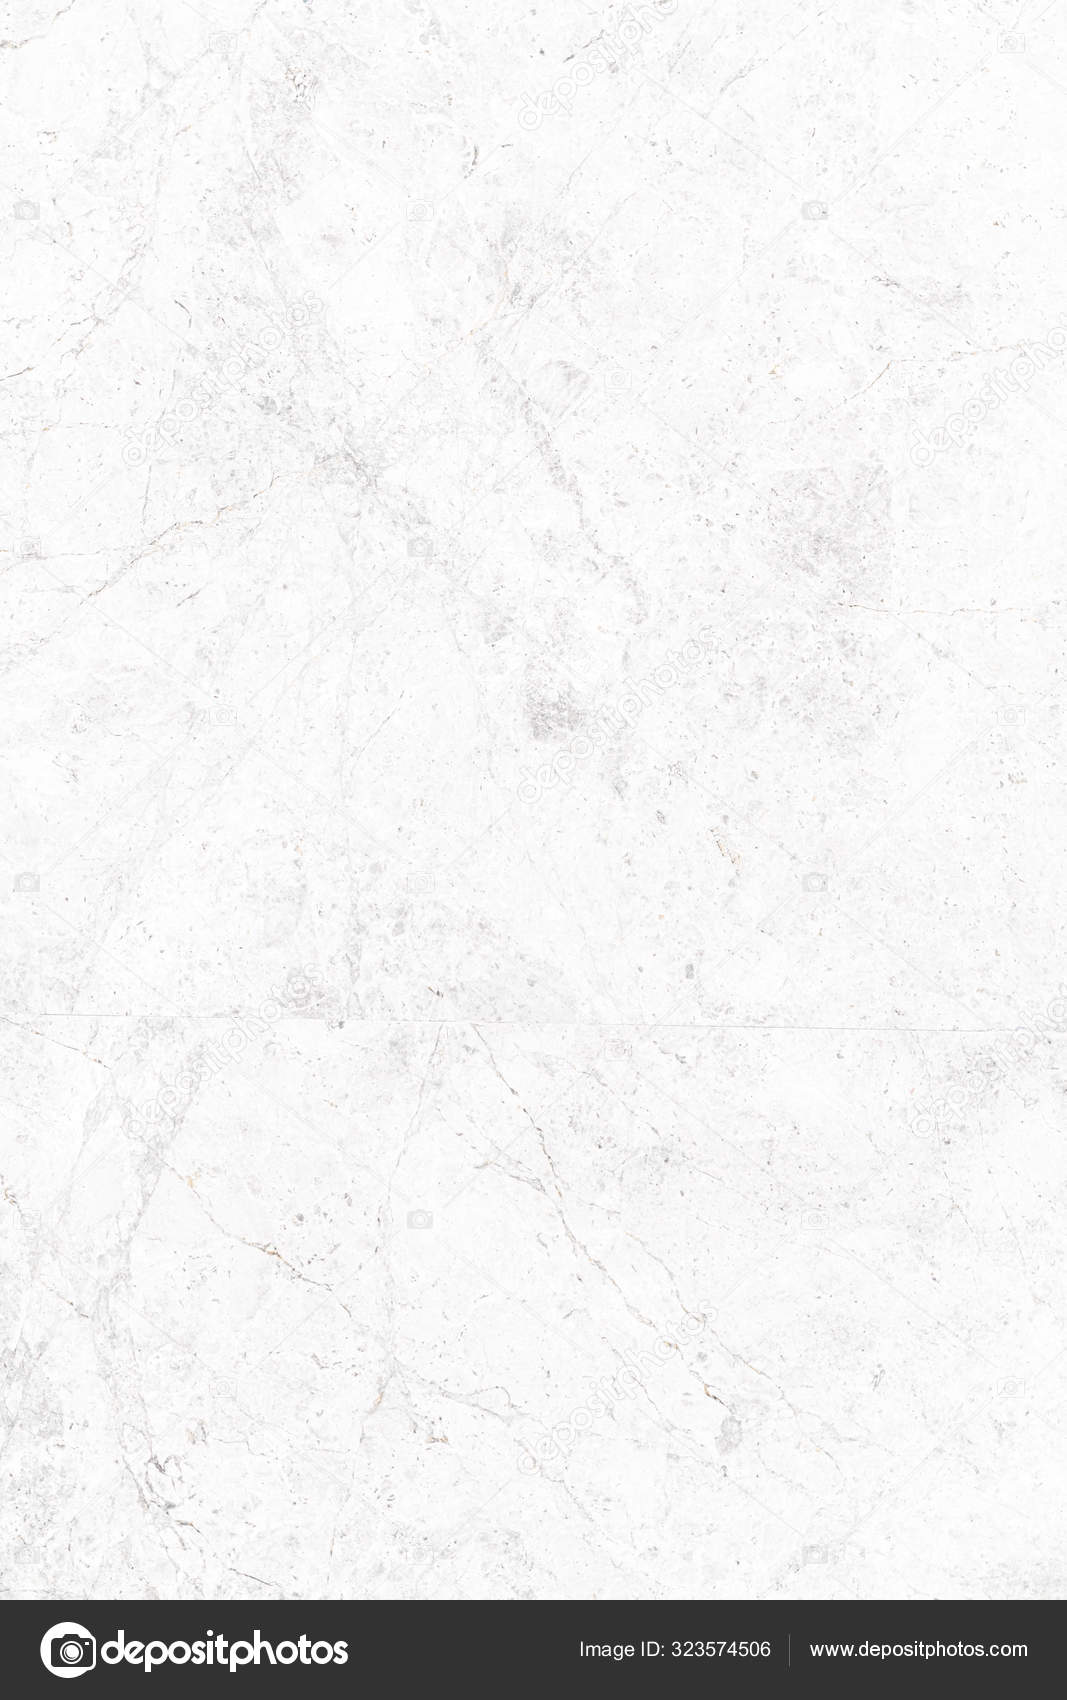 White Marble Seamless : white, marble, seamless, Seamless, White, Marble, Texture, Abstract, Background, Pattern, Resolution, Stock, Photo,, Image, Nmc2s, #323574506